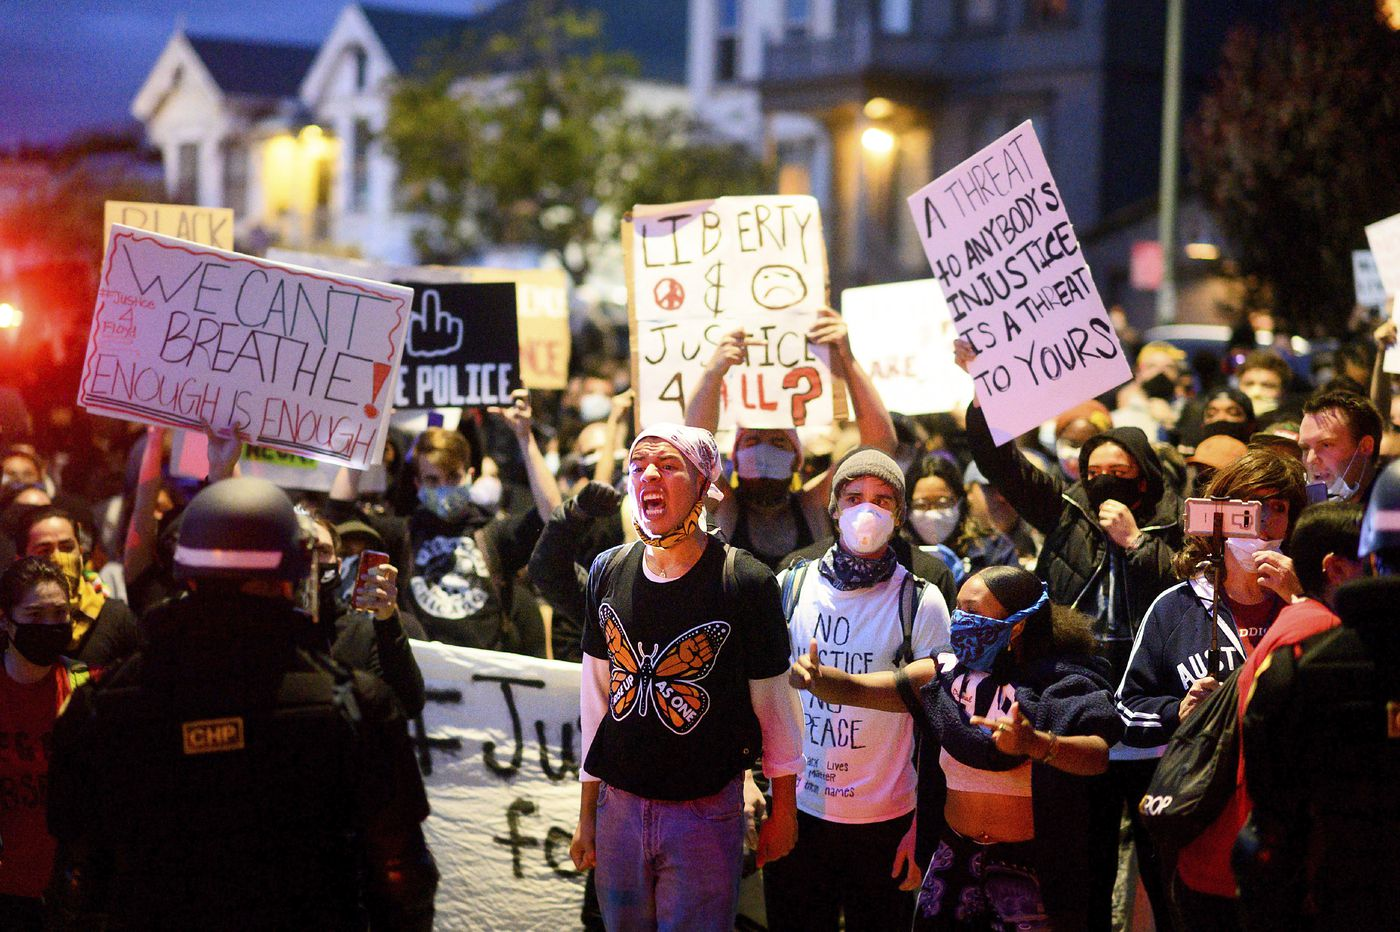 Federal officer killed guarding Oakland courthouse near protest